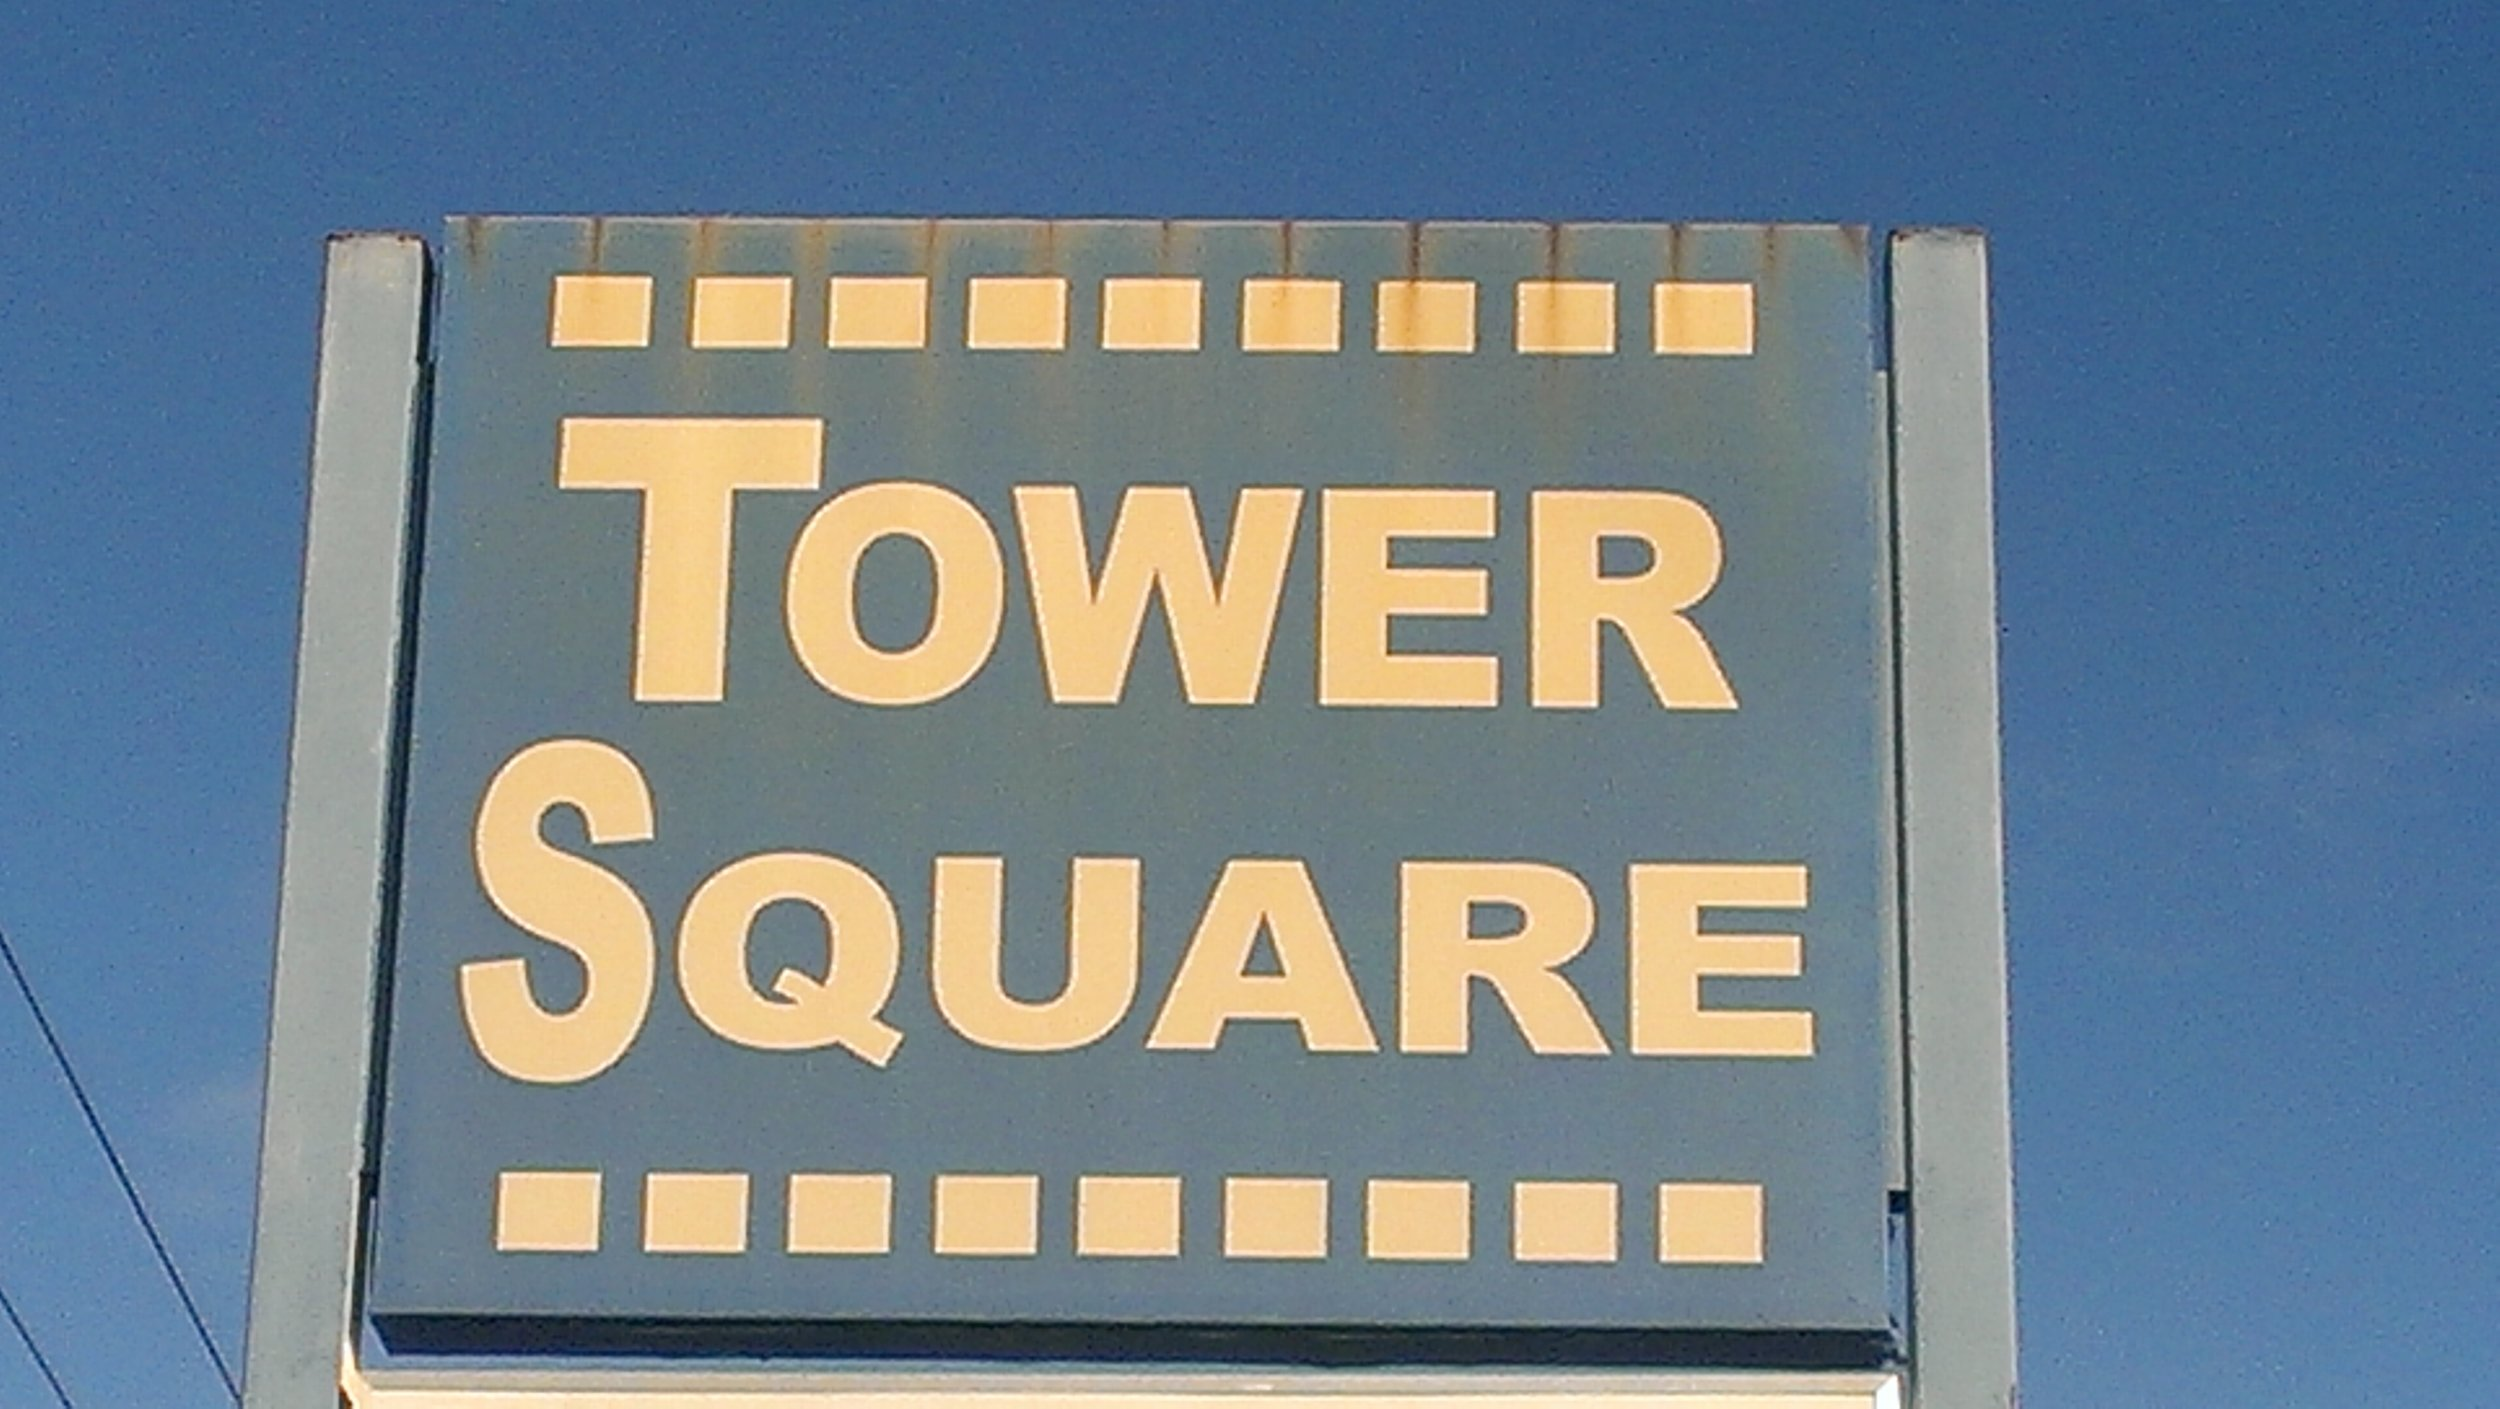 We are located in Tower Square